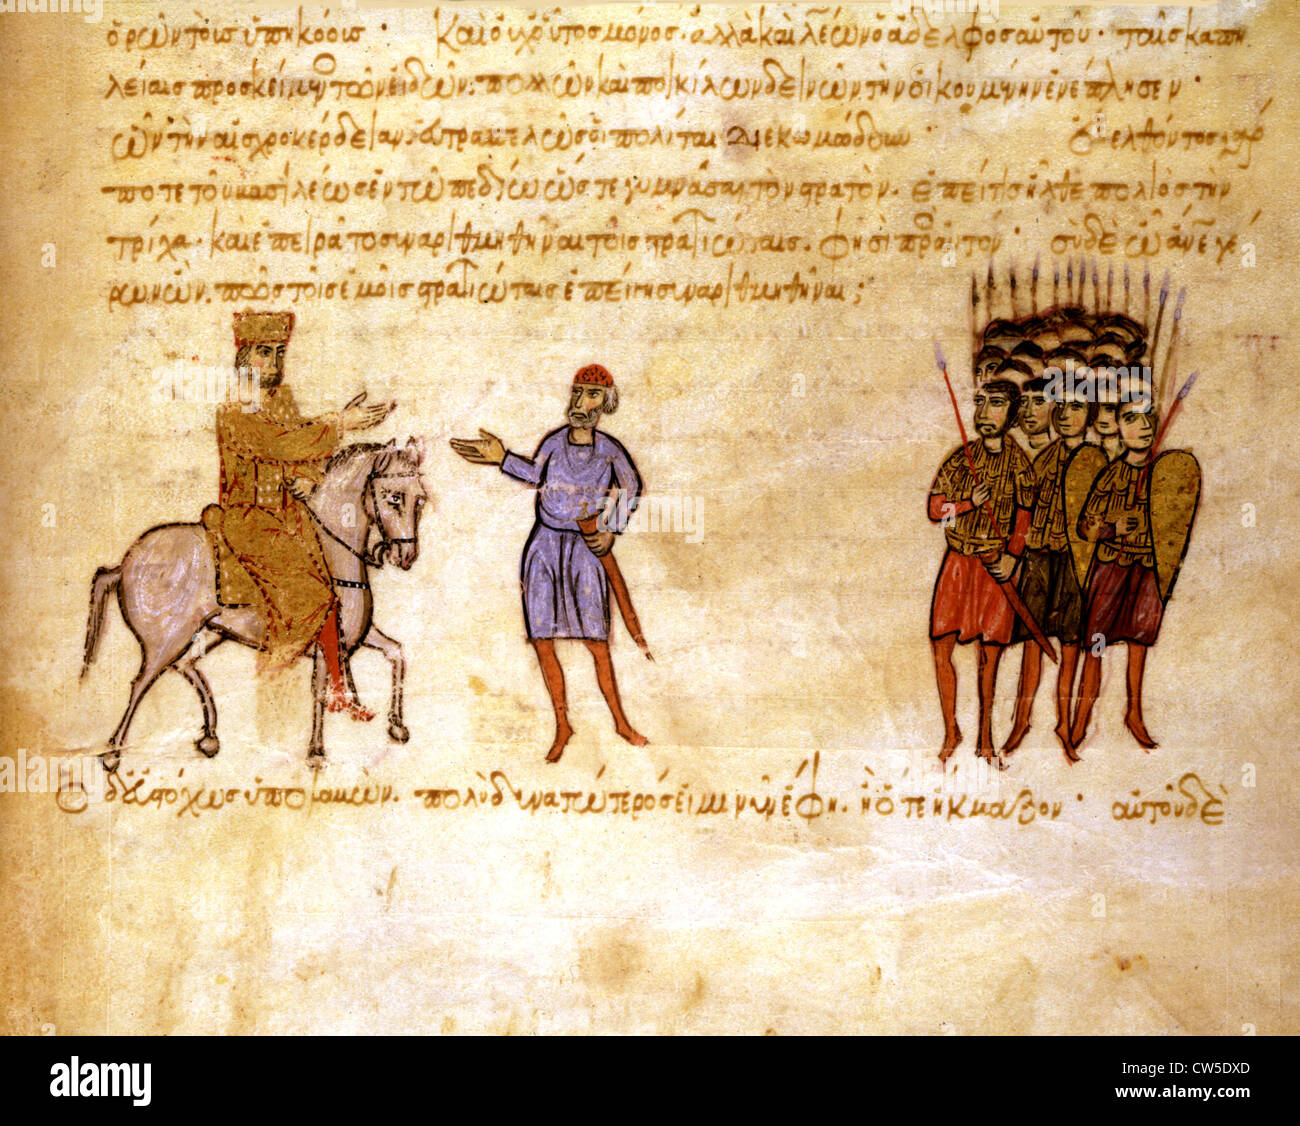 Miniature from the 'Skylitzes Chronicle' (13th century) - Stock Image